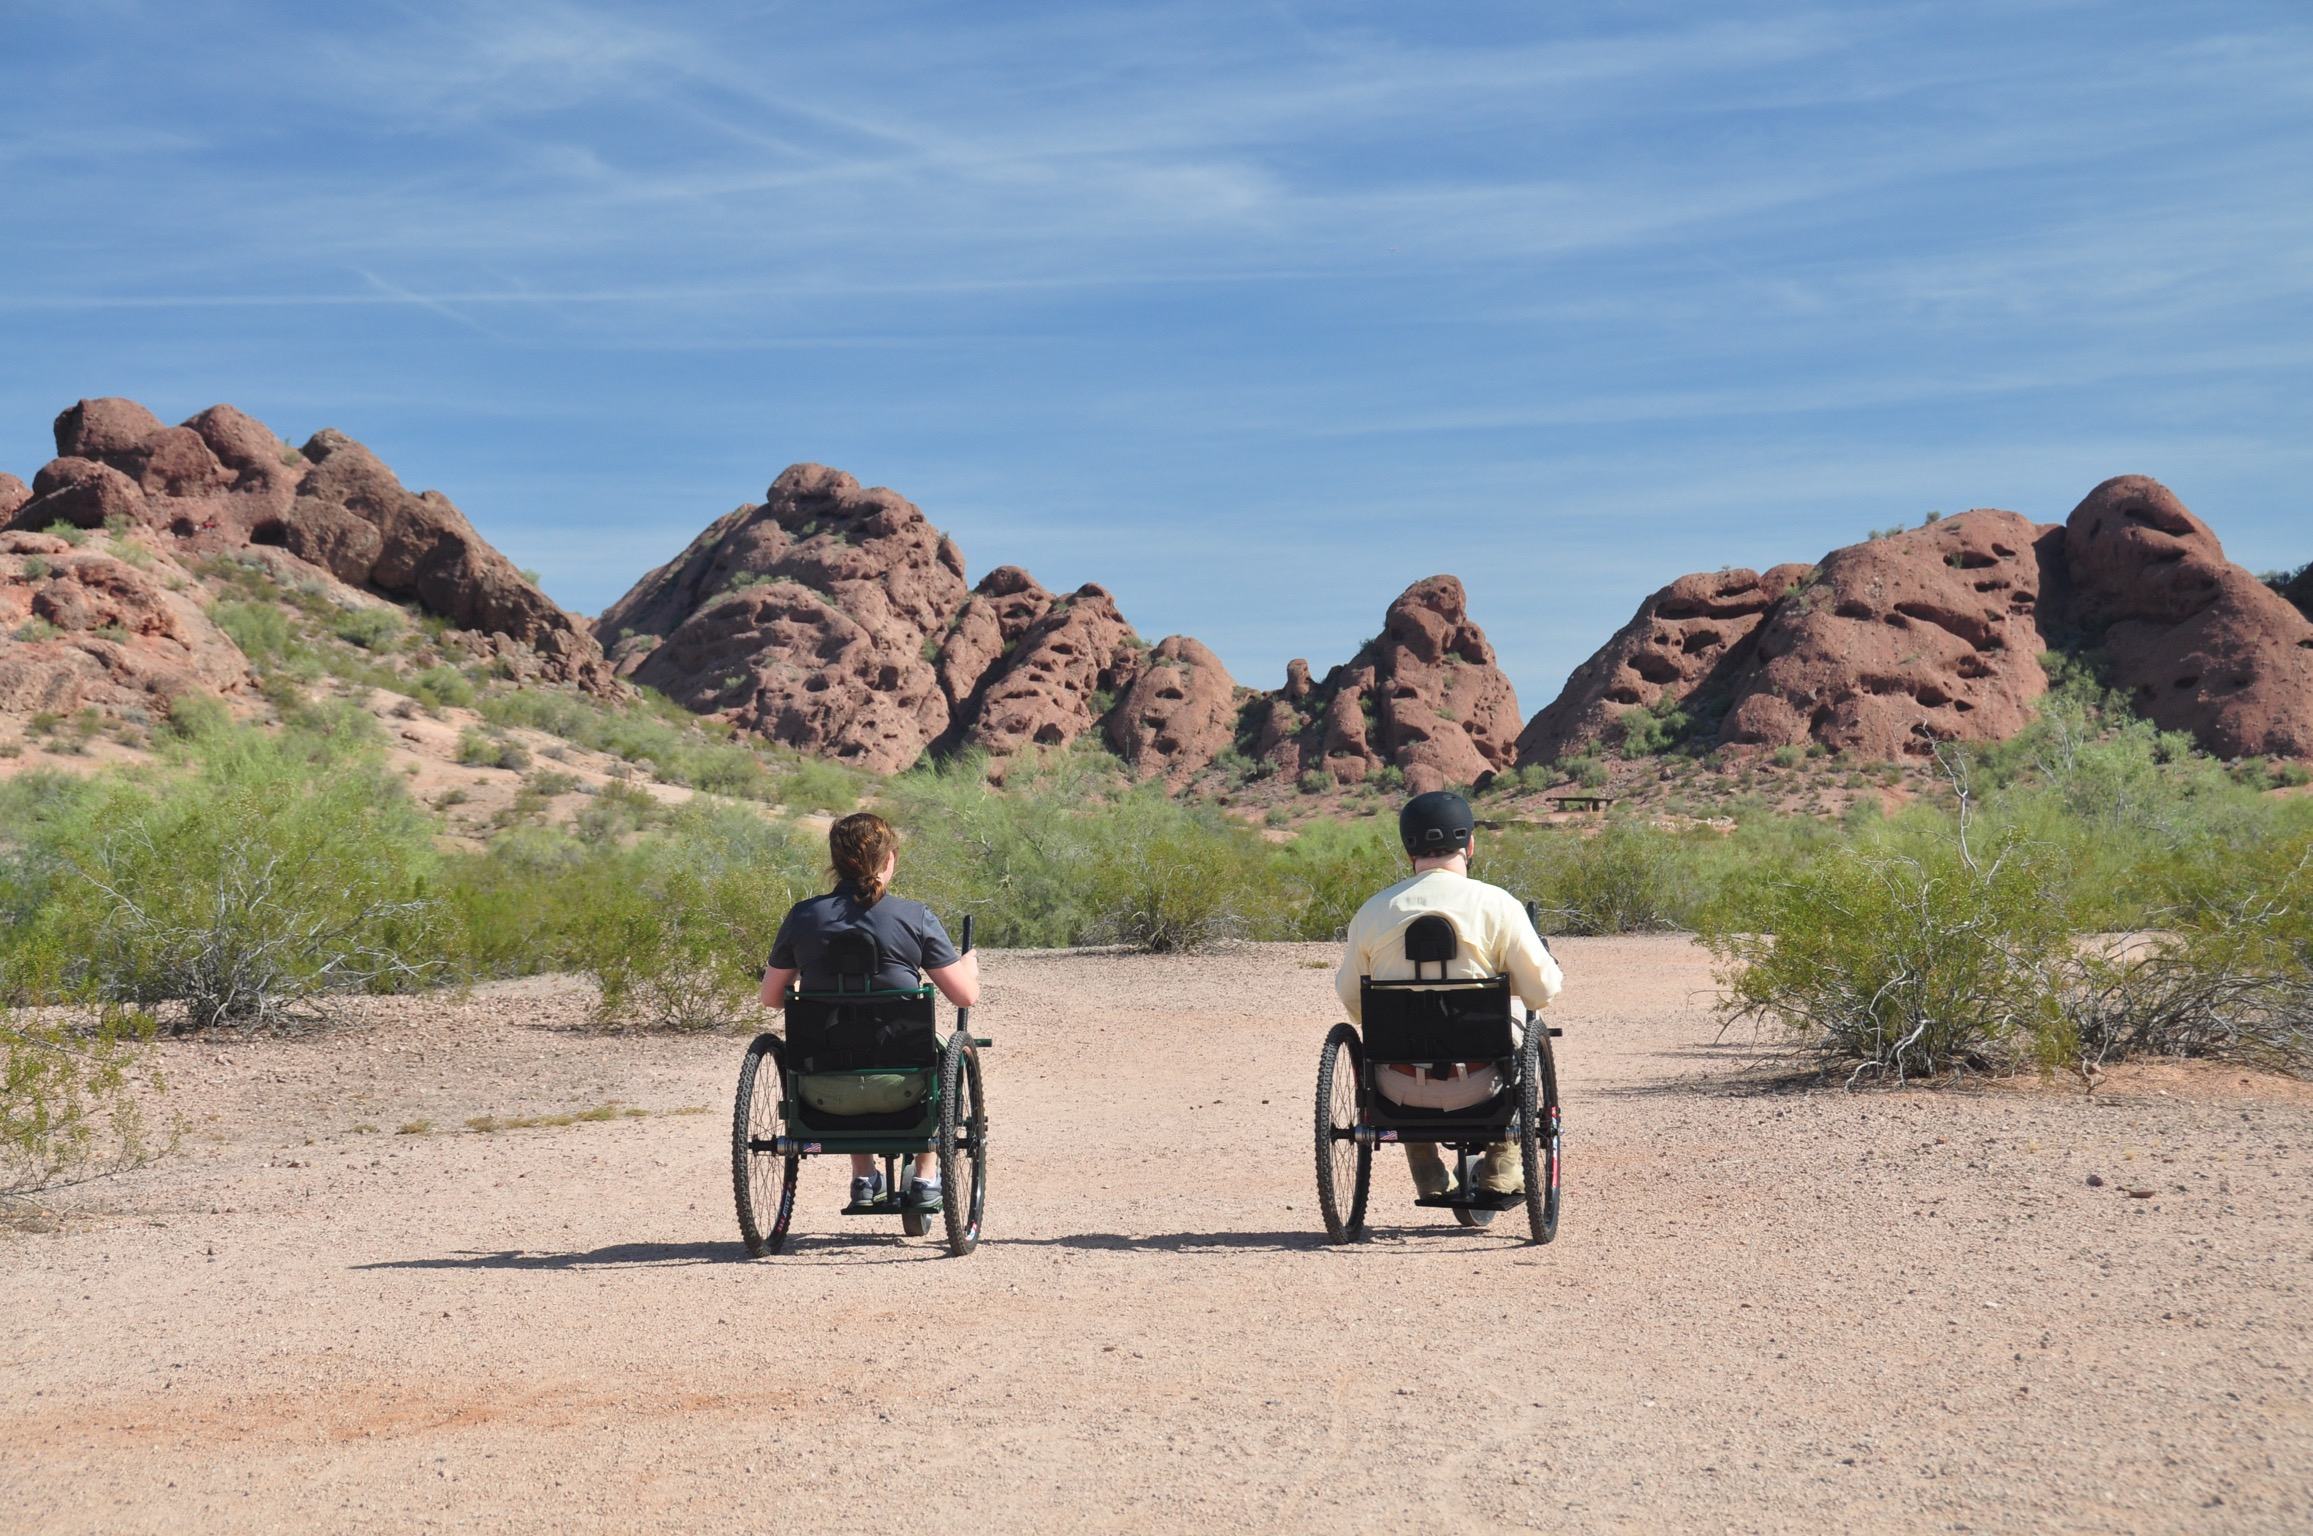 Riding in Papago Park with Steve, one of our Kickstarter backers and first riders.